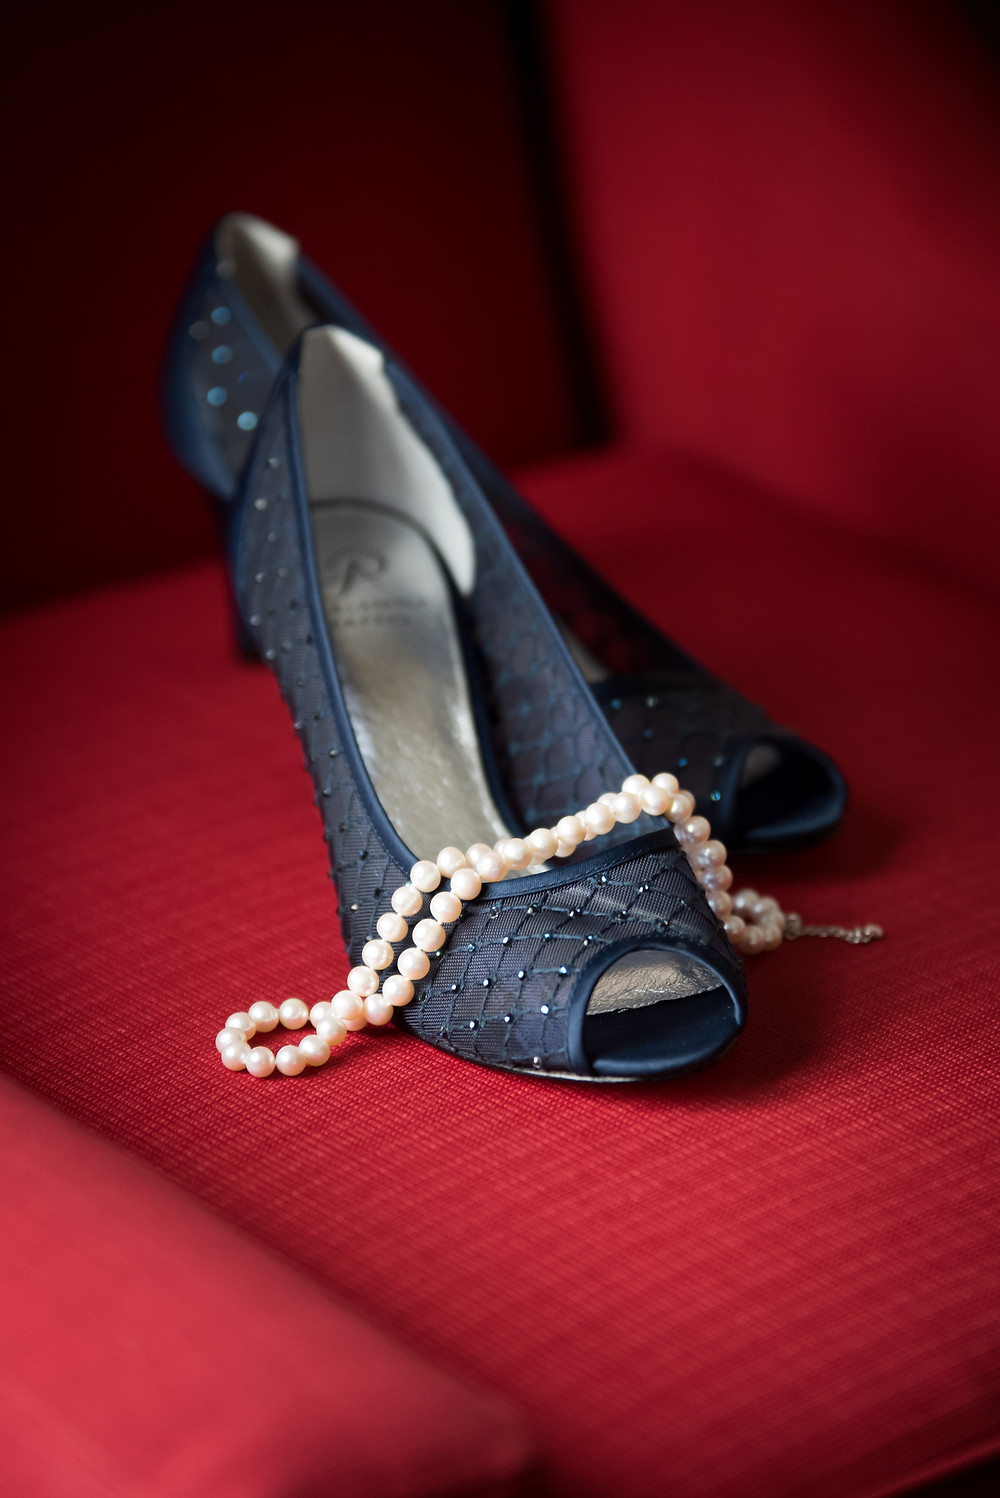 The bride wore beautiful blue shoes on wedding day